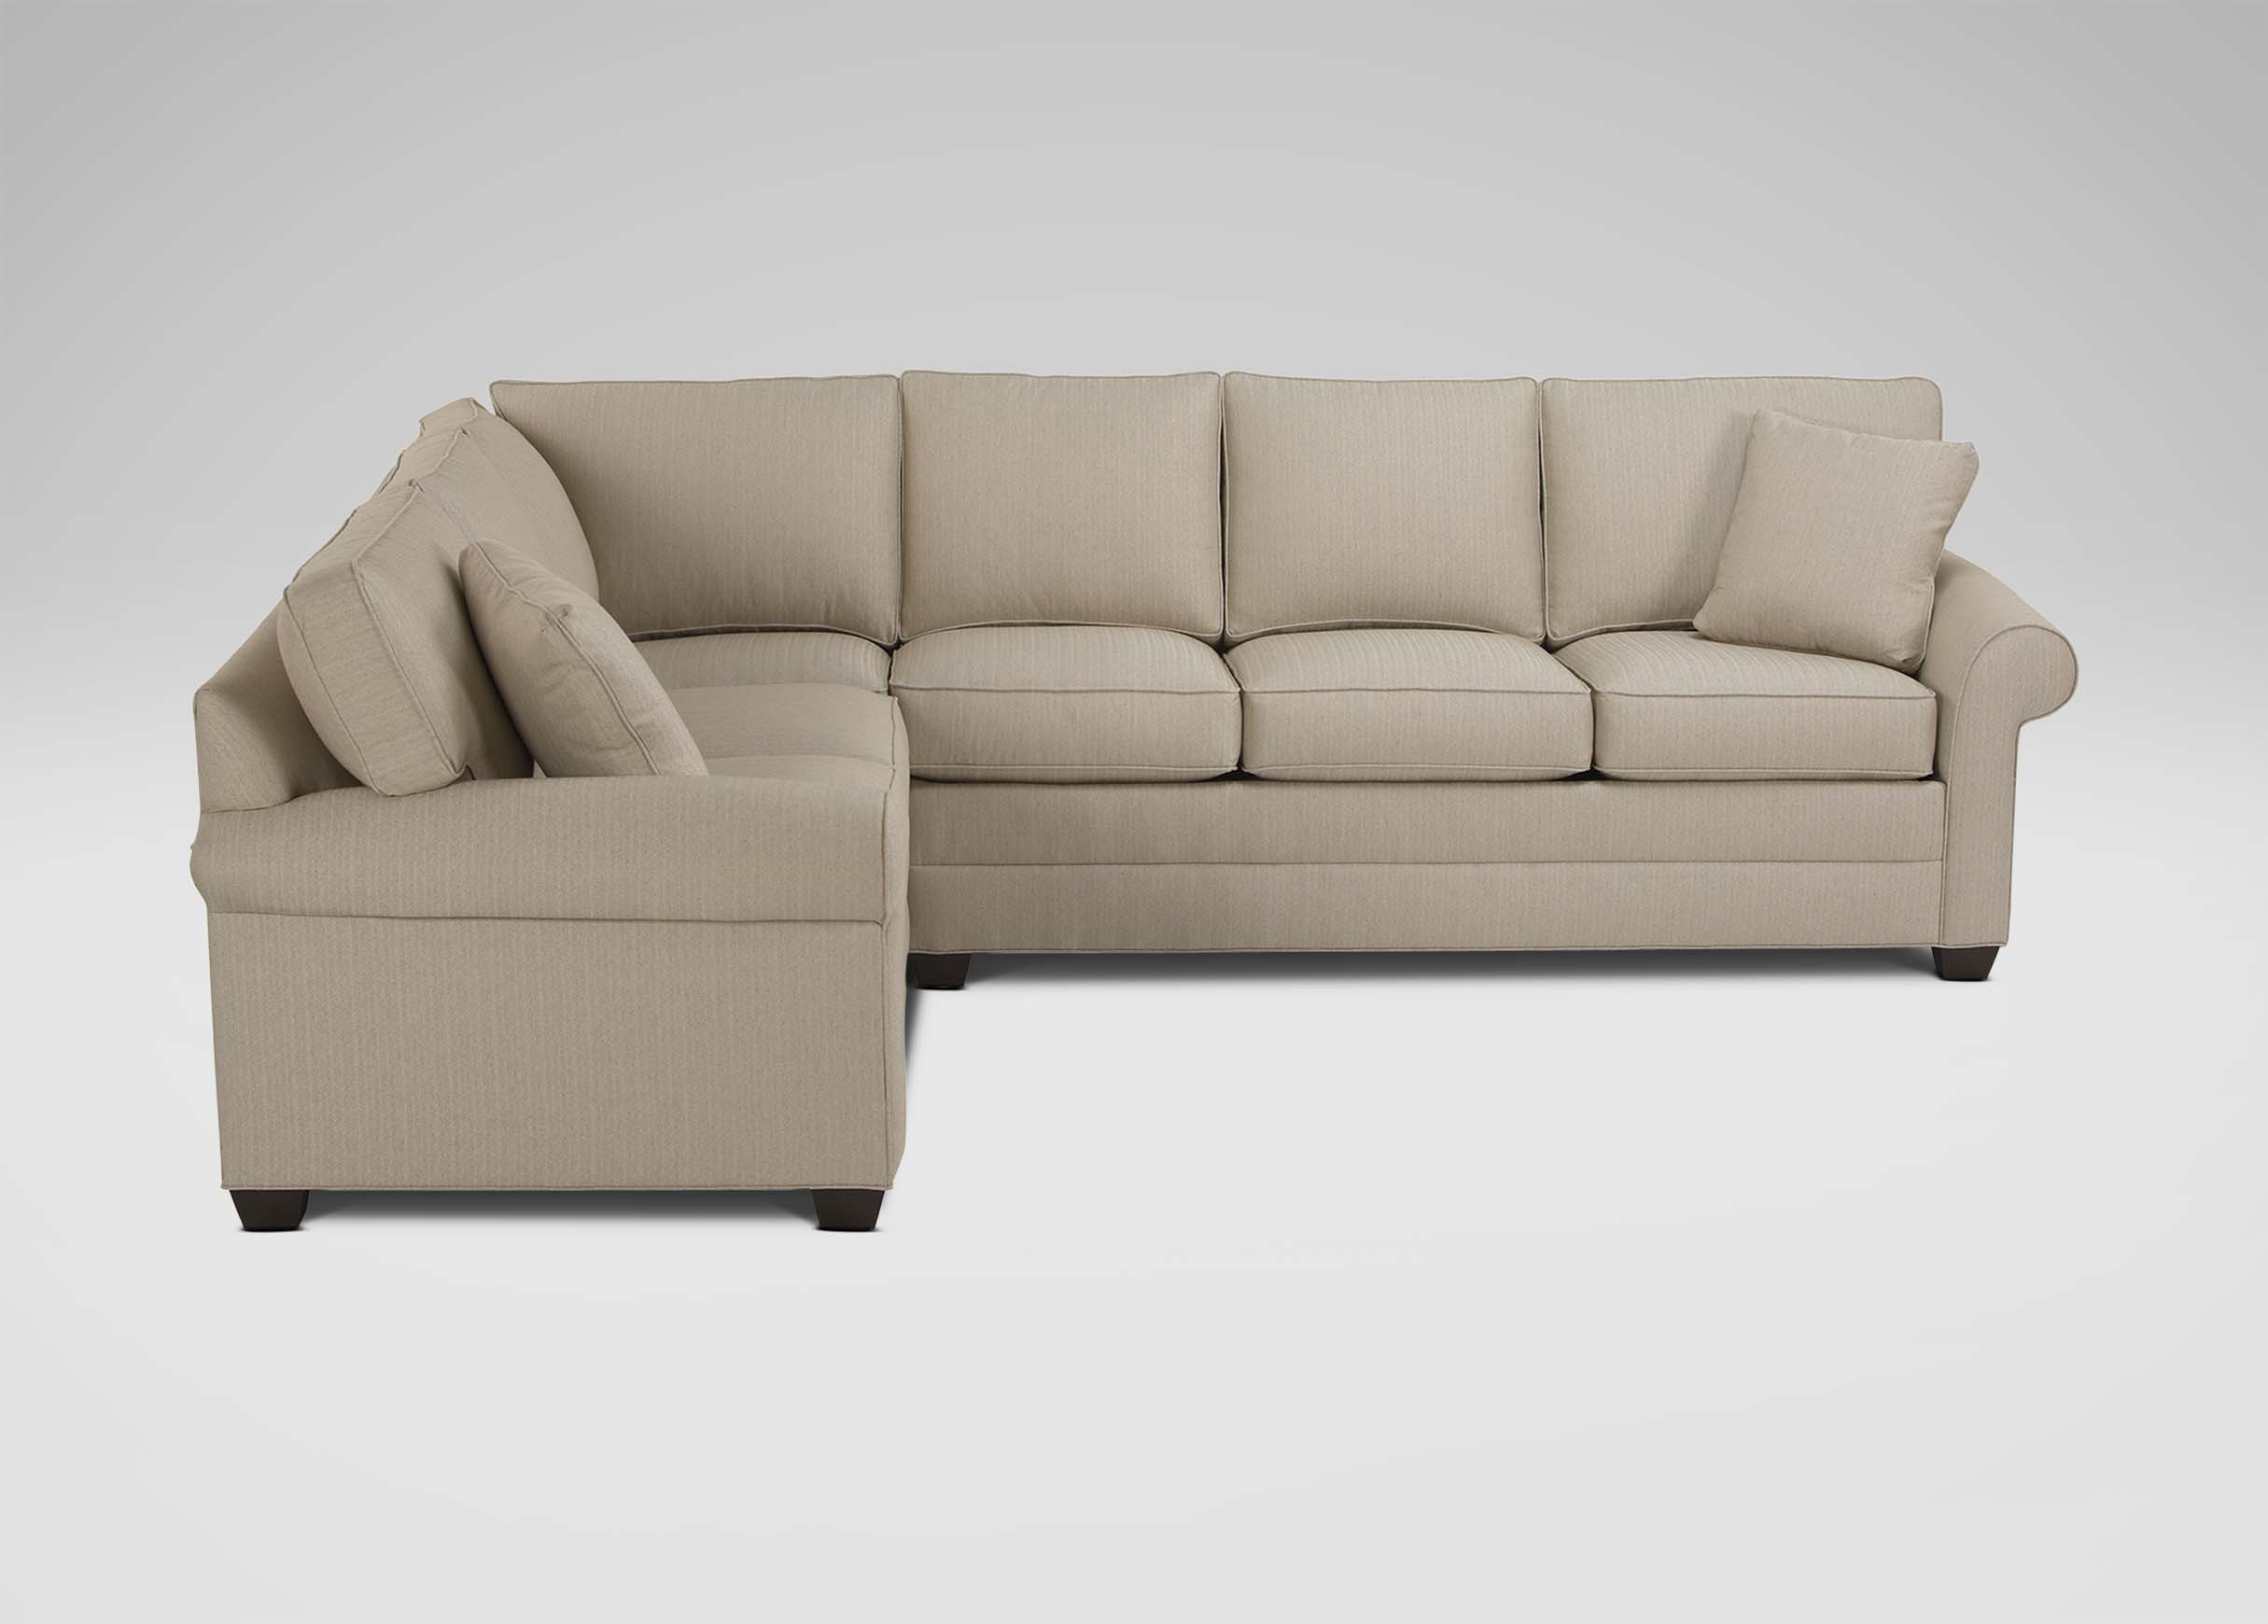 Bennett Roll Arm Sectional | Sectionals For Sectional Sofas At Ethan Allen (View 3 of 10)